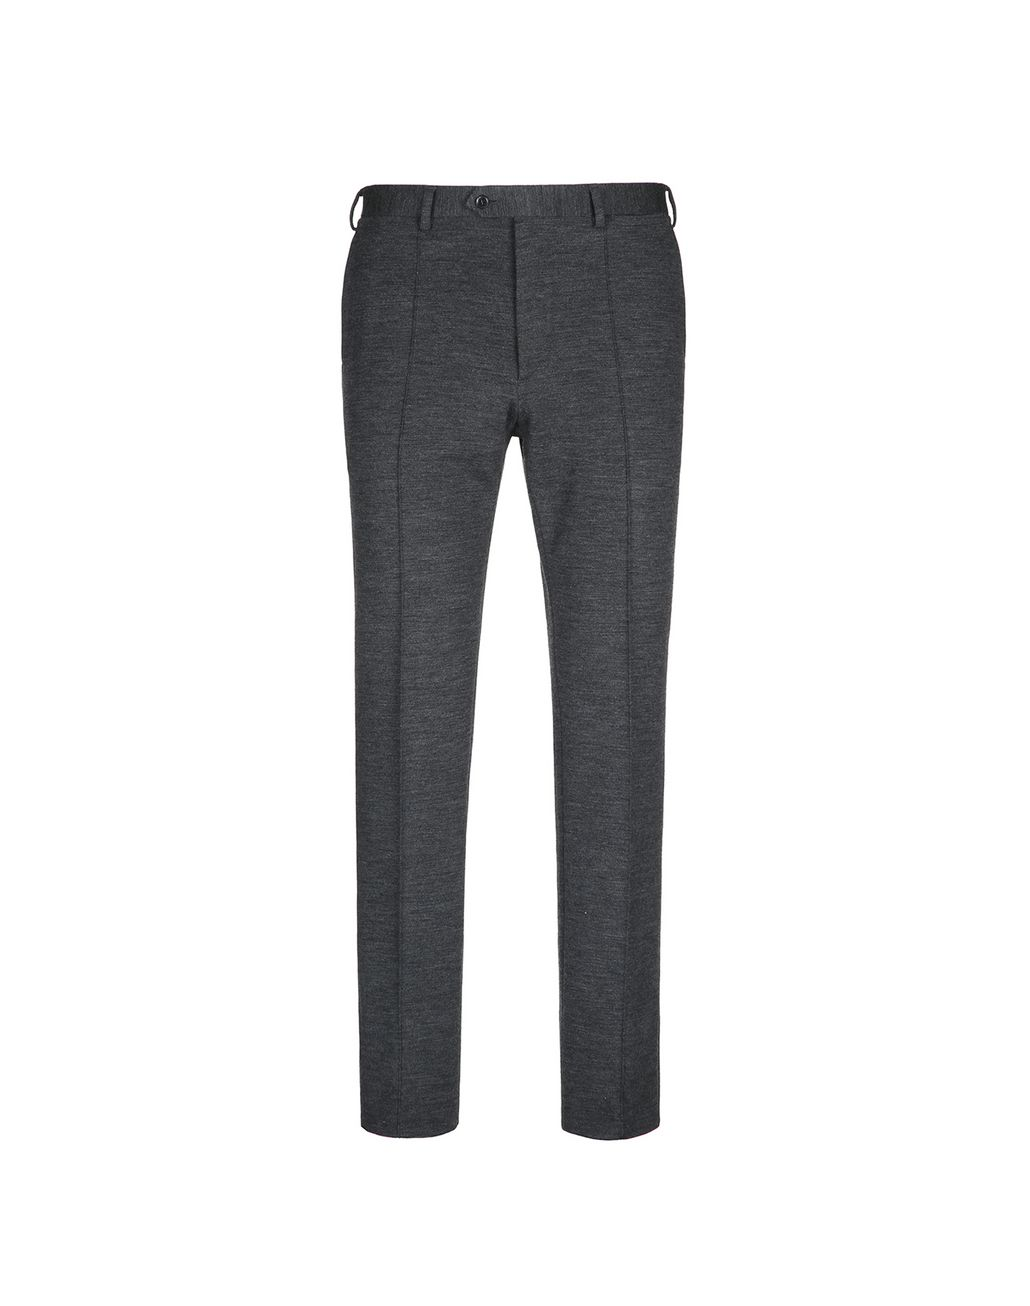 BRIONI Antrachite Grey Jersey Trousers Trousers [*** pickupInStoreShippingNotGuaranteed_info ***] f